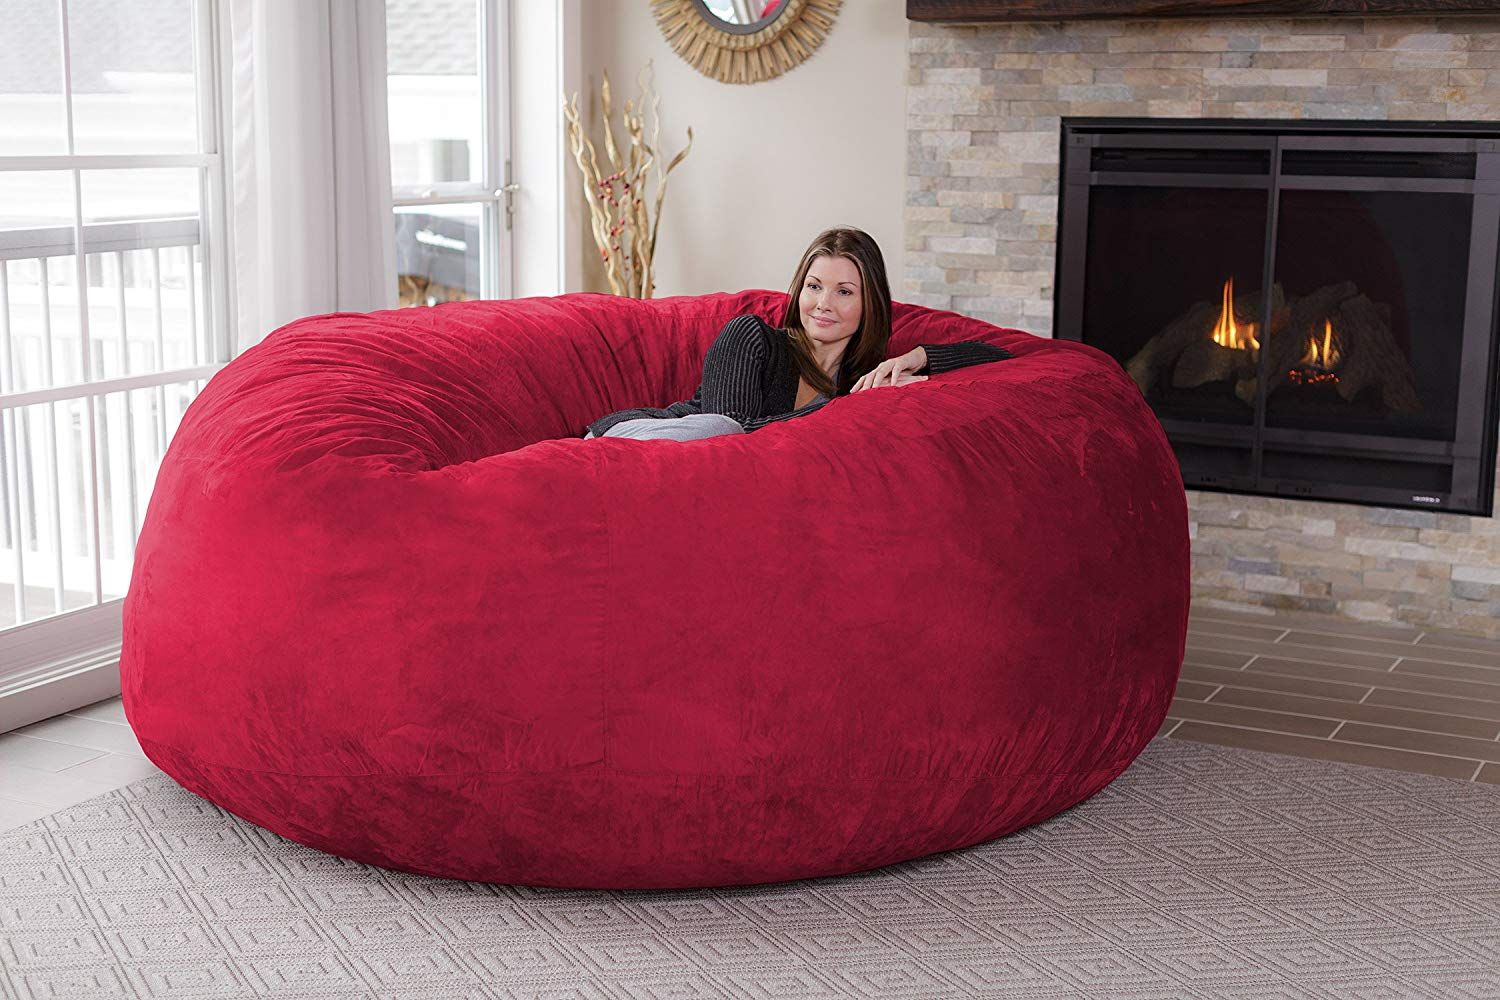 Giant Bean Bag 8ft Let S Cocoon In It Chill Sack Bean Bag Chair Giant 8 Memory Foam Furniture Bean Bag Big Sof Bean Bag Chair Bean Bag Sofa Bean Bag Bed